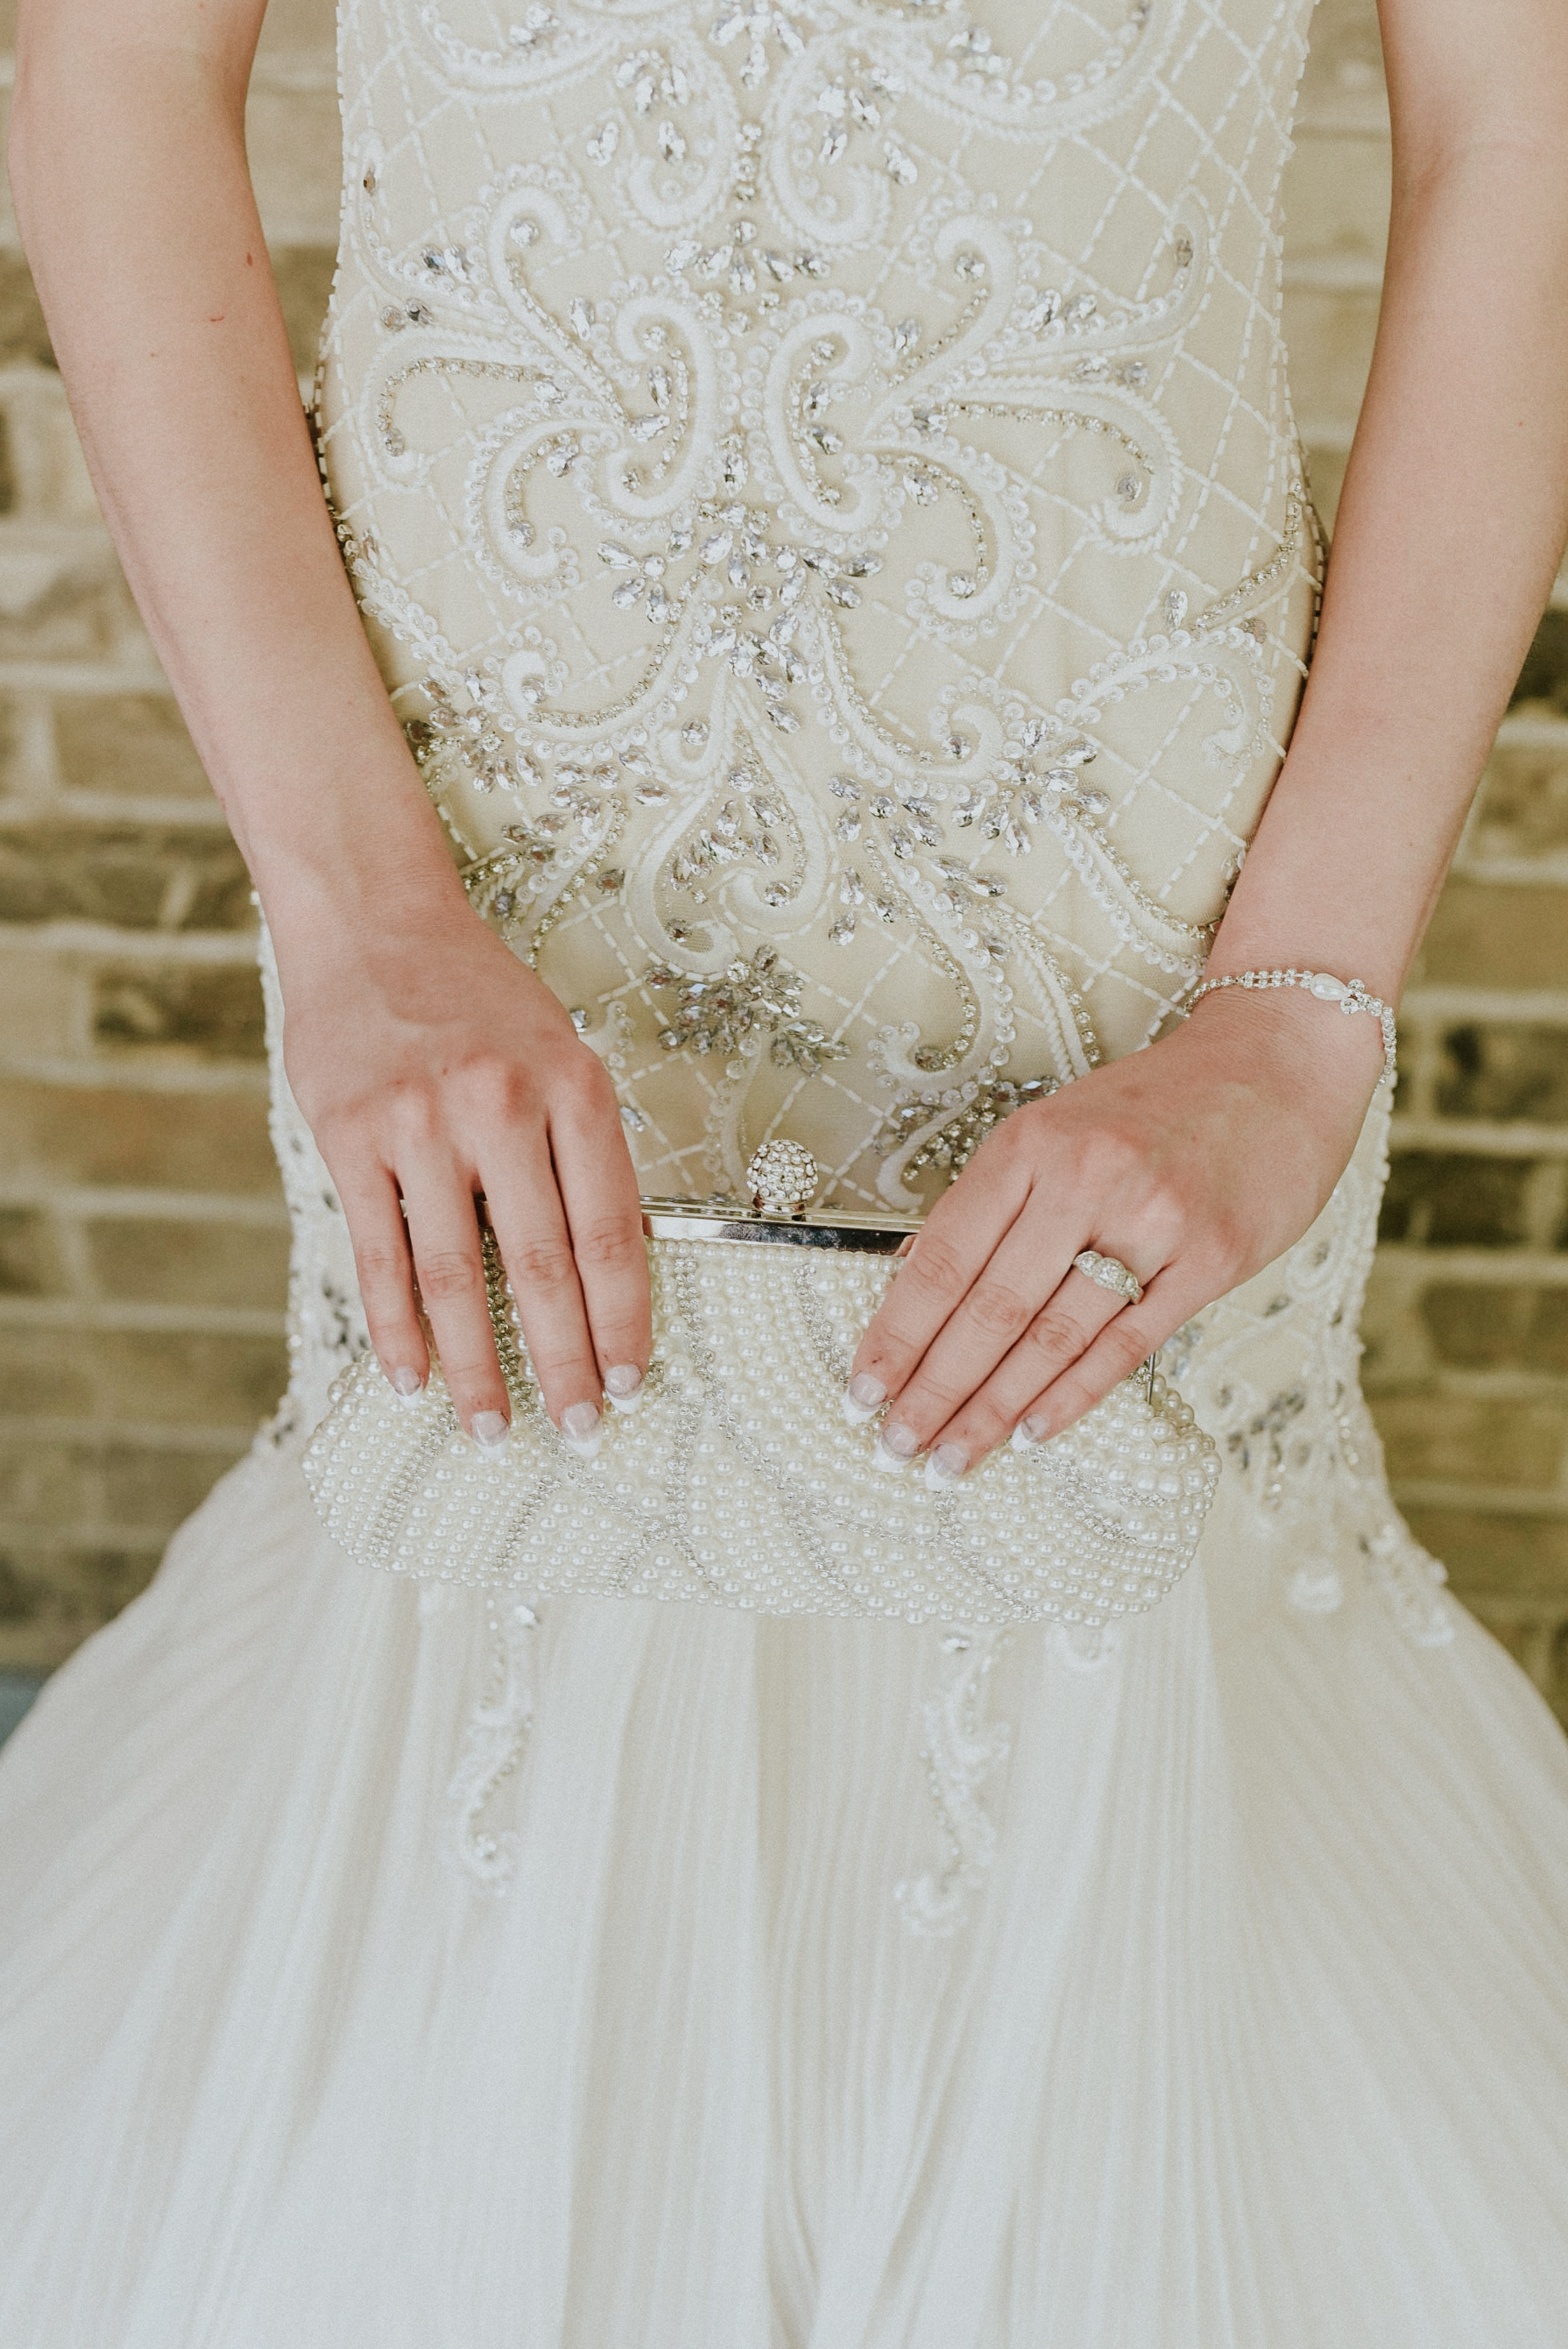 Pearls clutch and wedding dress Styled Shoot Ontario Canada